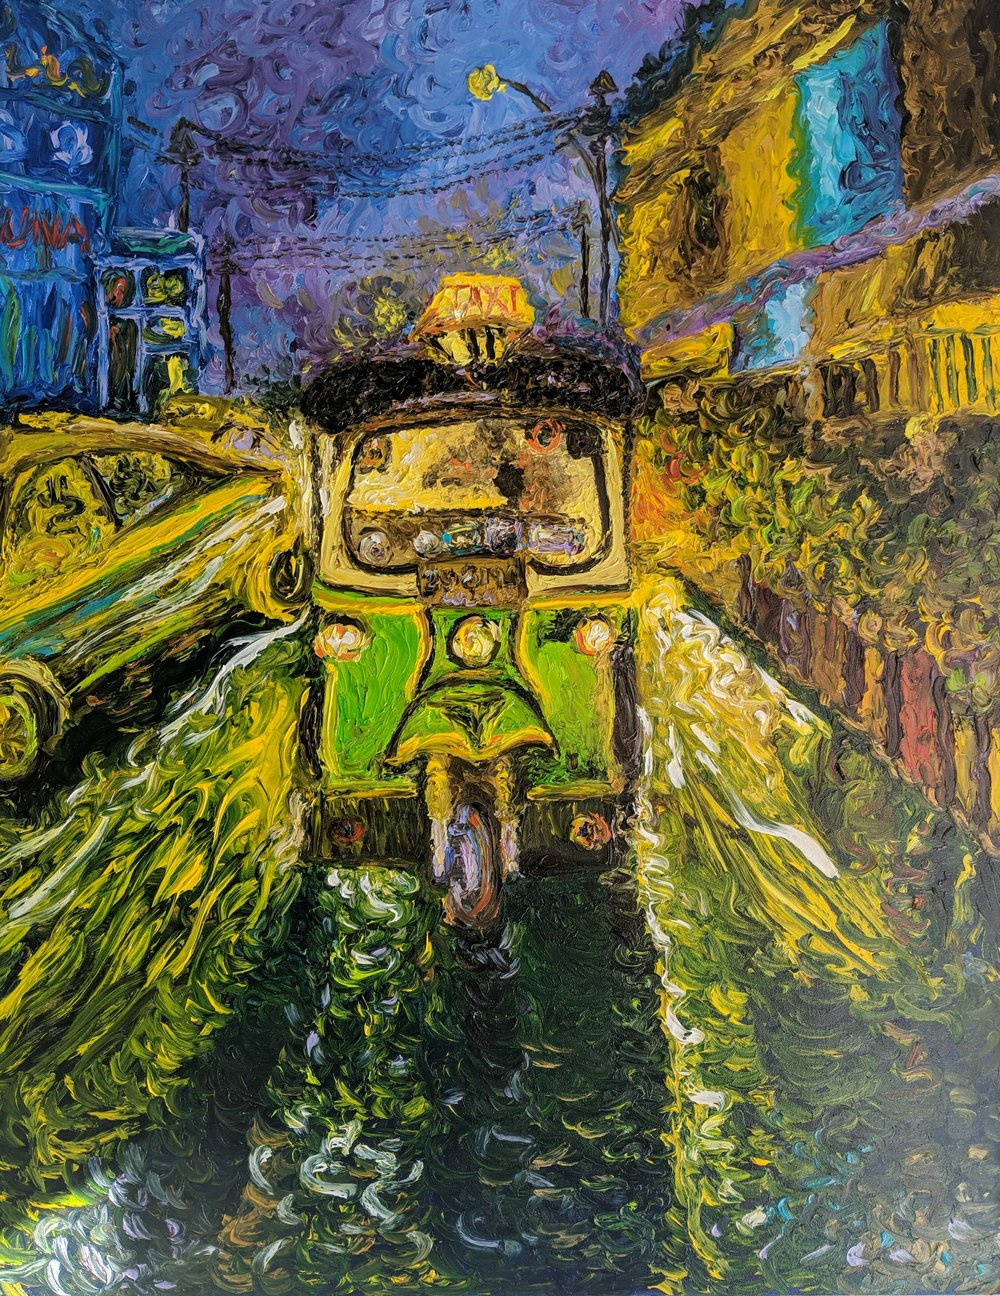 Runa Gedam, Oil on canvas, The one we love to hate, the Rickshawala, 24 x 30 inches